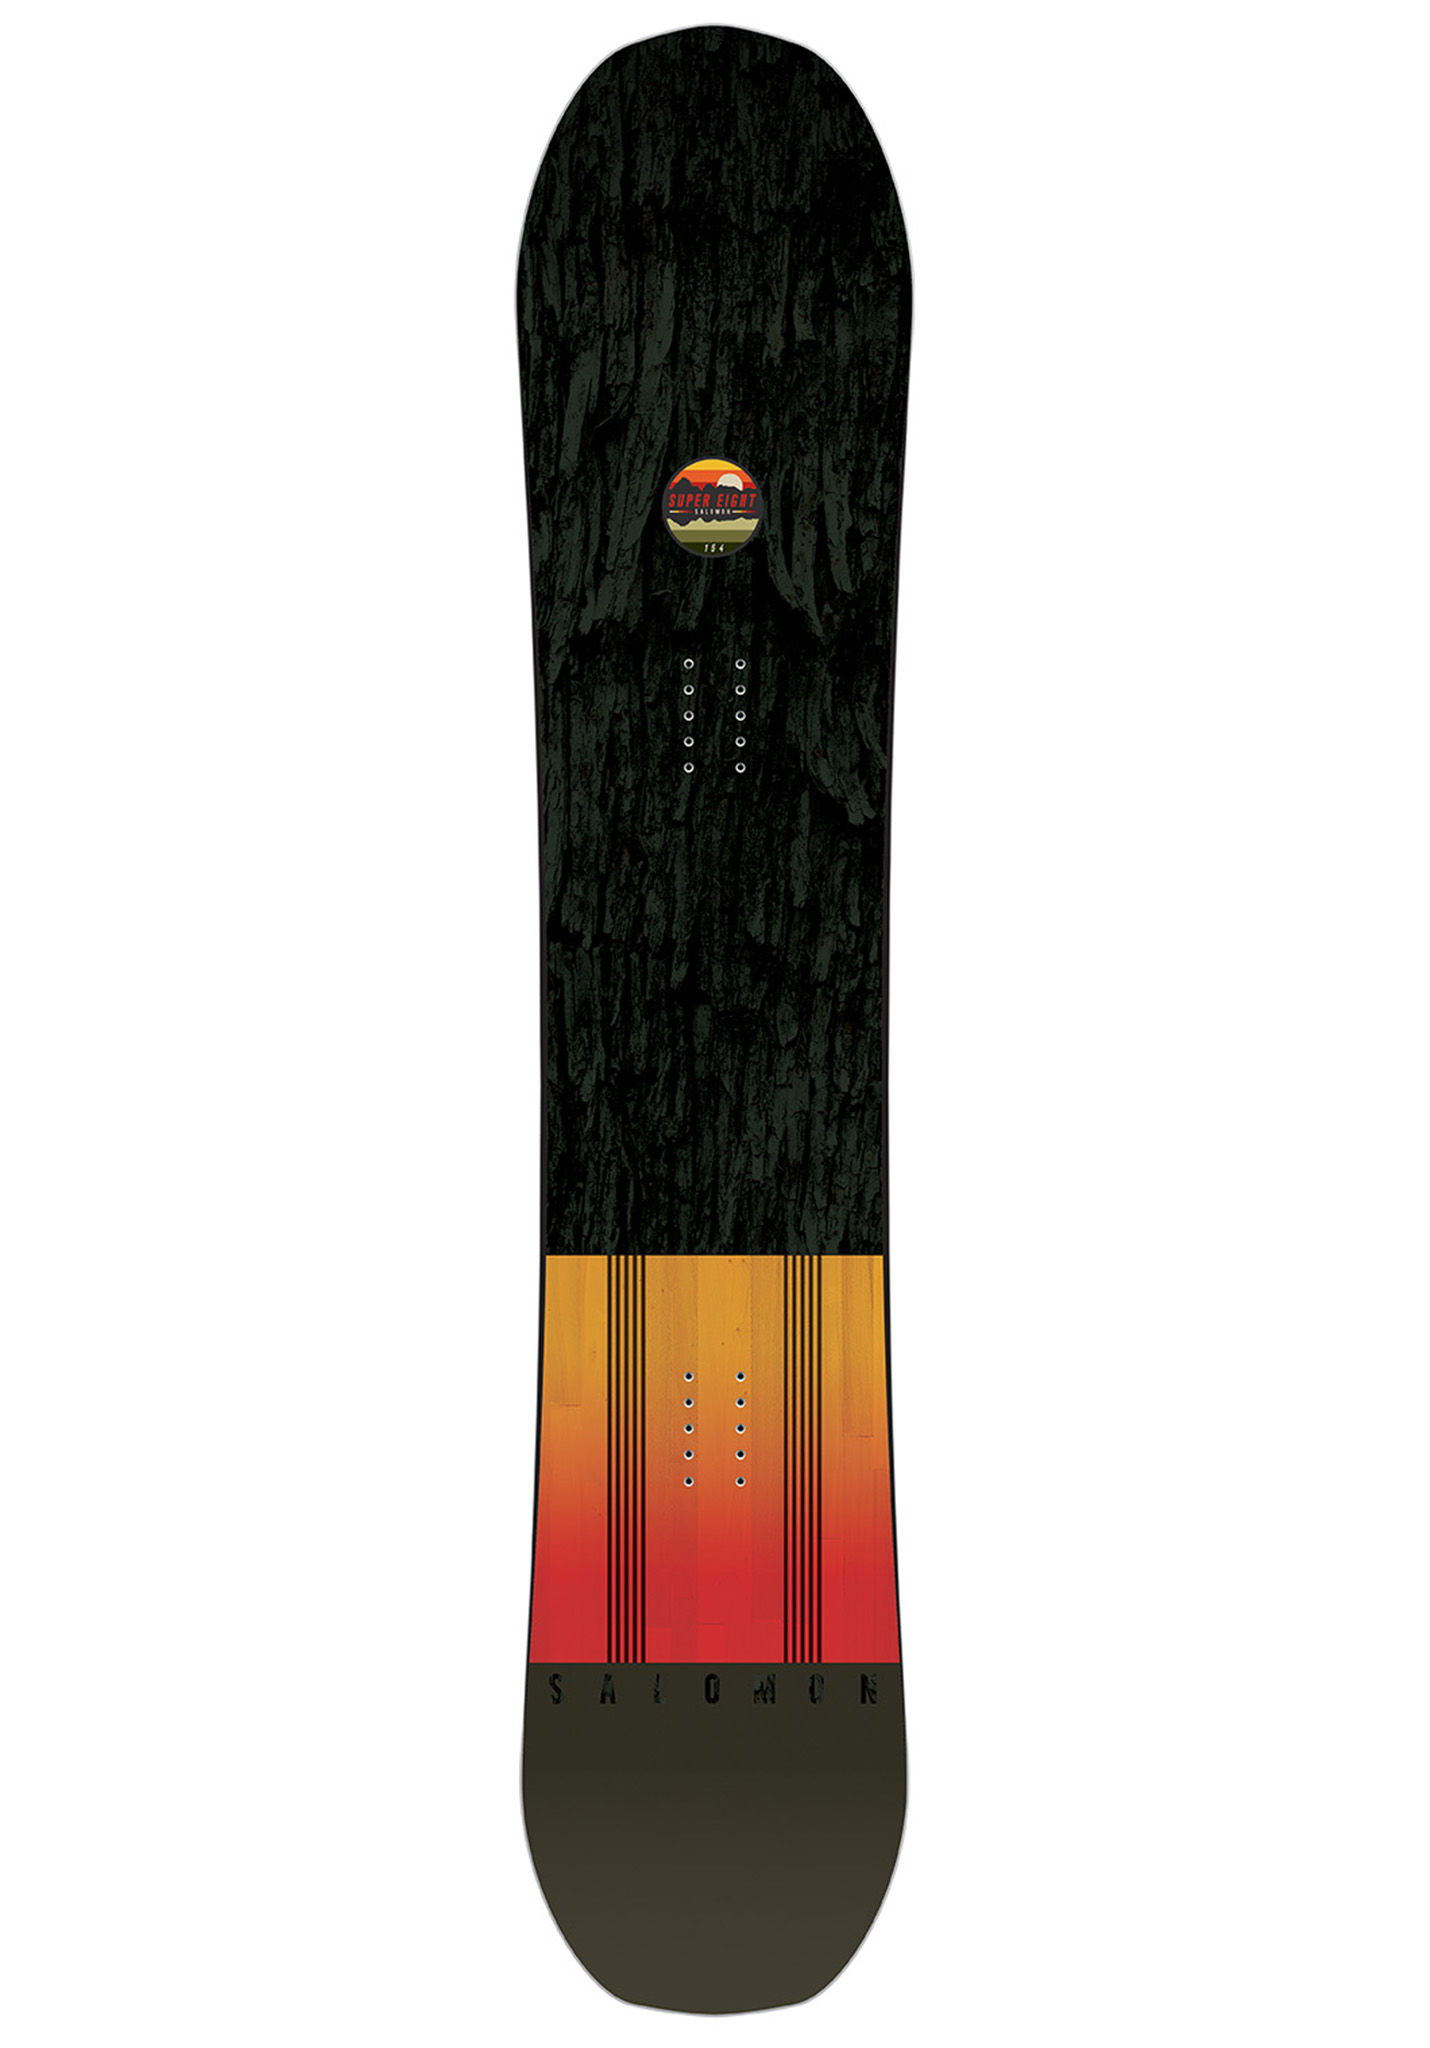 5ccab216591a Salomon Super 8 154cm - Snowboard for Men - Multicolor - Planet Sports